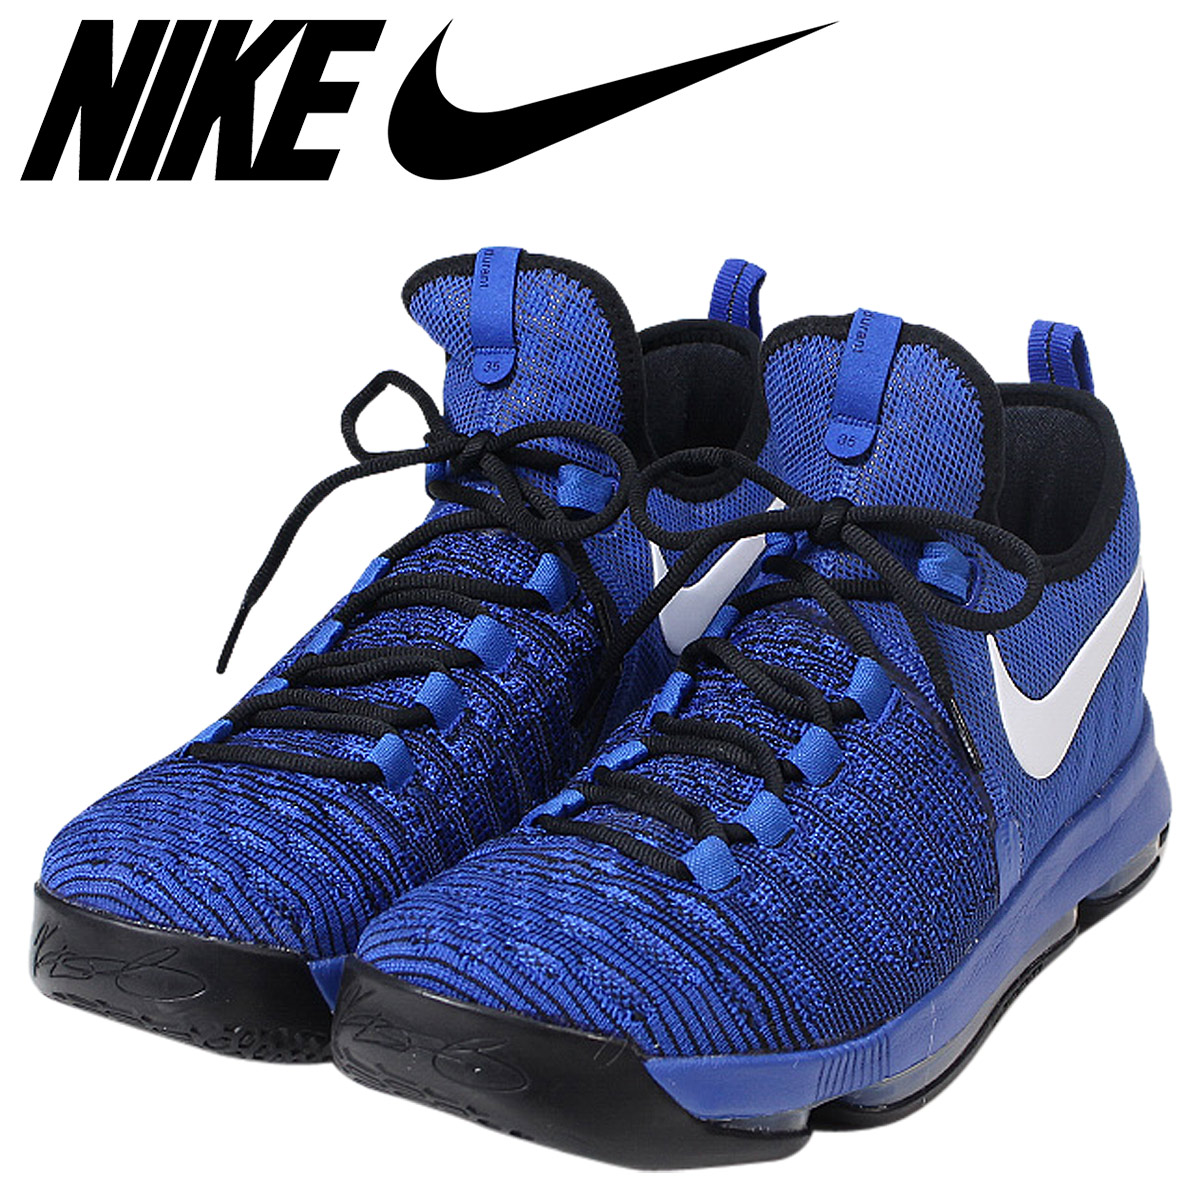 07e2ae6034de ALLSPORTS  NIKE Nike zoom KD9 sneakers ZOOM KD 9 EP GAME ROYAL WHITE ...